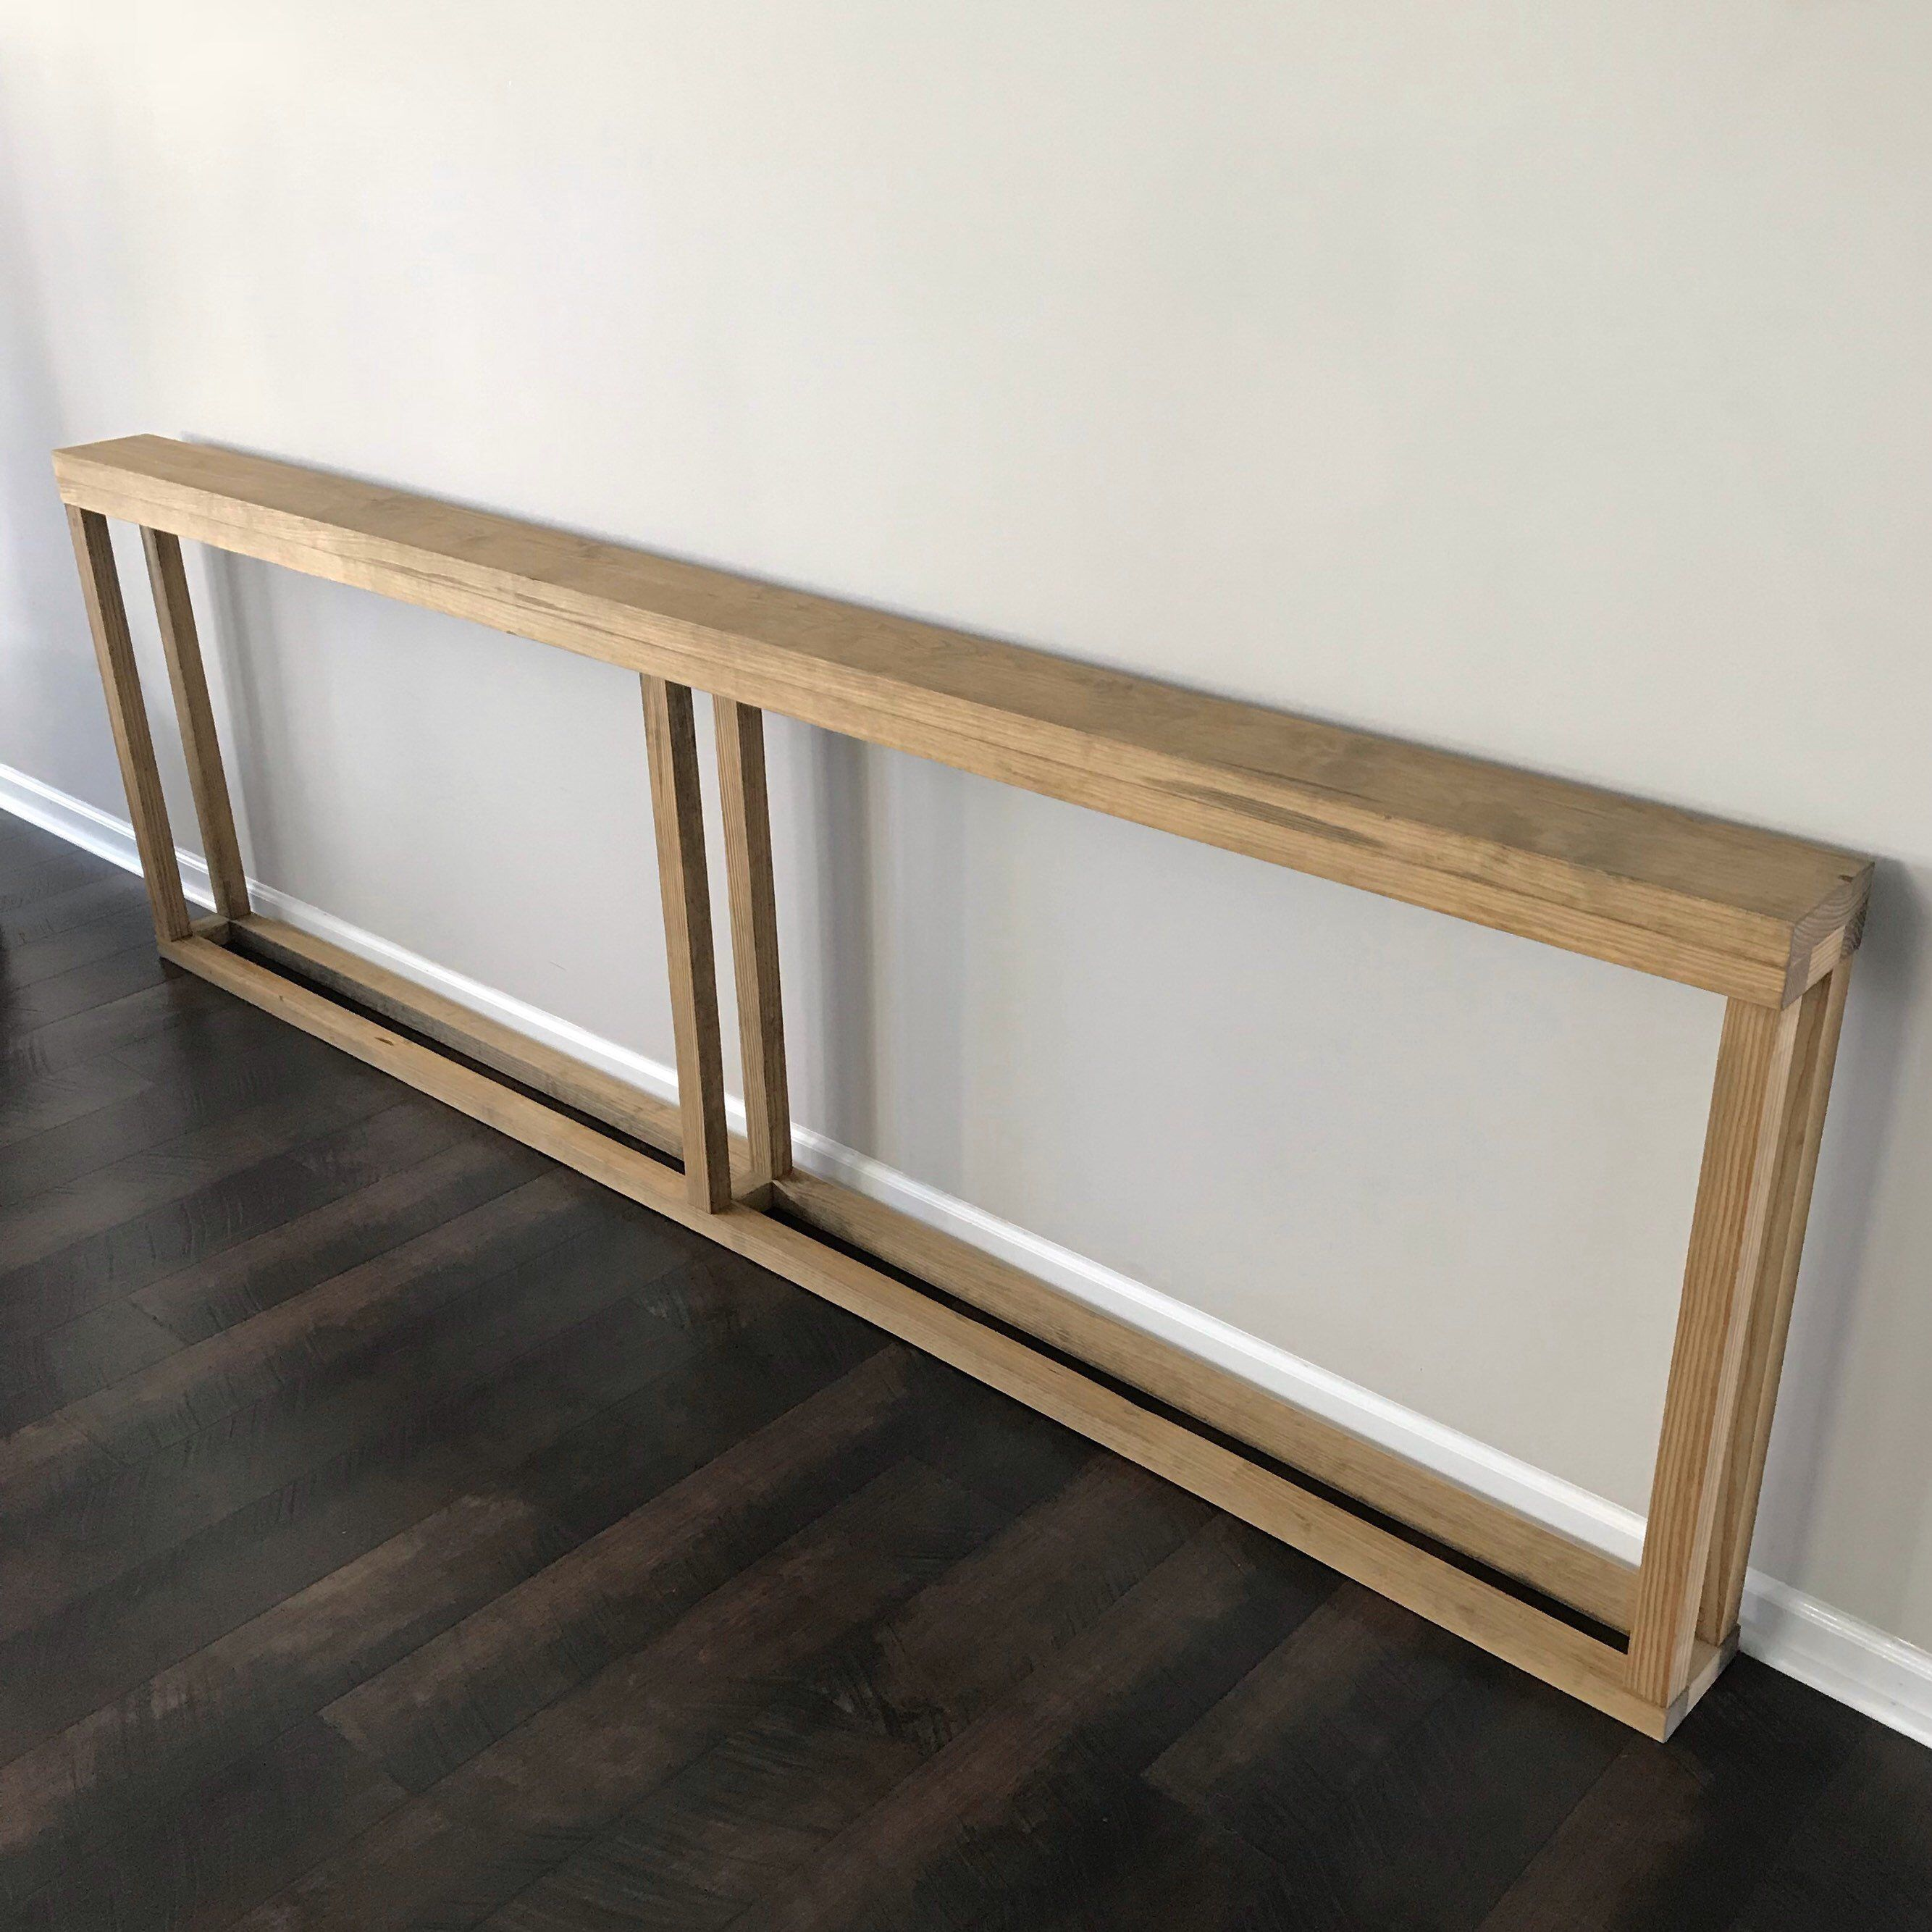 9 Foot 108 Extra Long Skinny Narrow 6 Console Table Long Sofa Table Extra Long Console Table Narrow Console Table